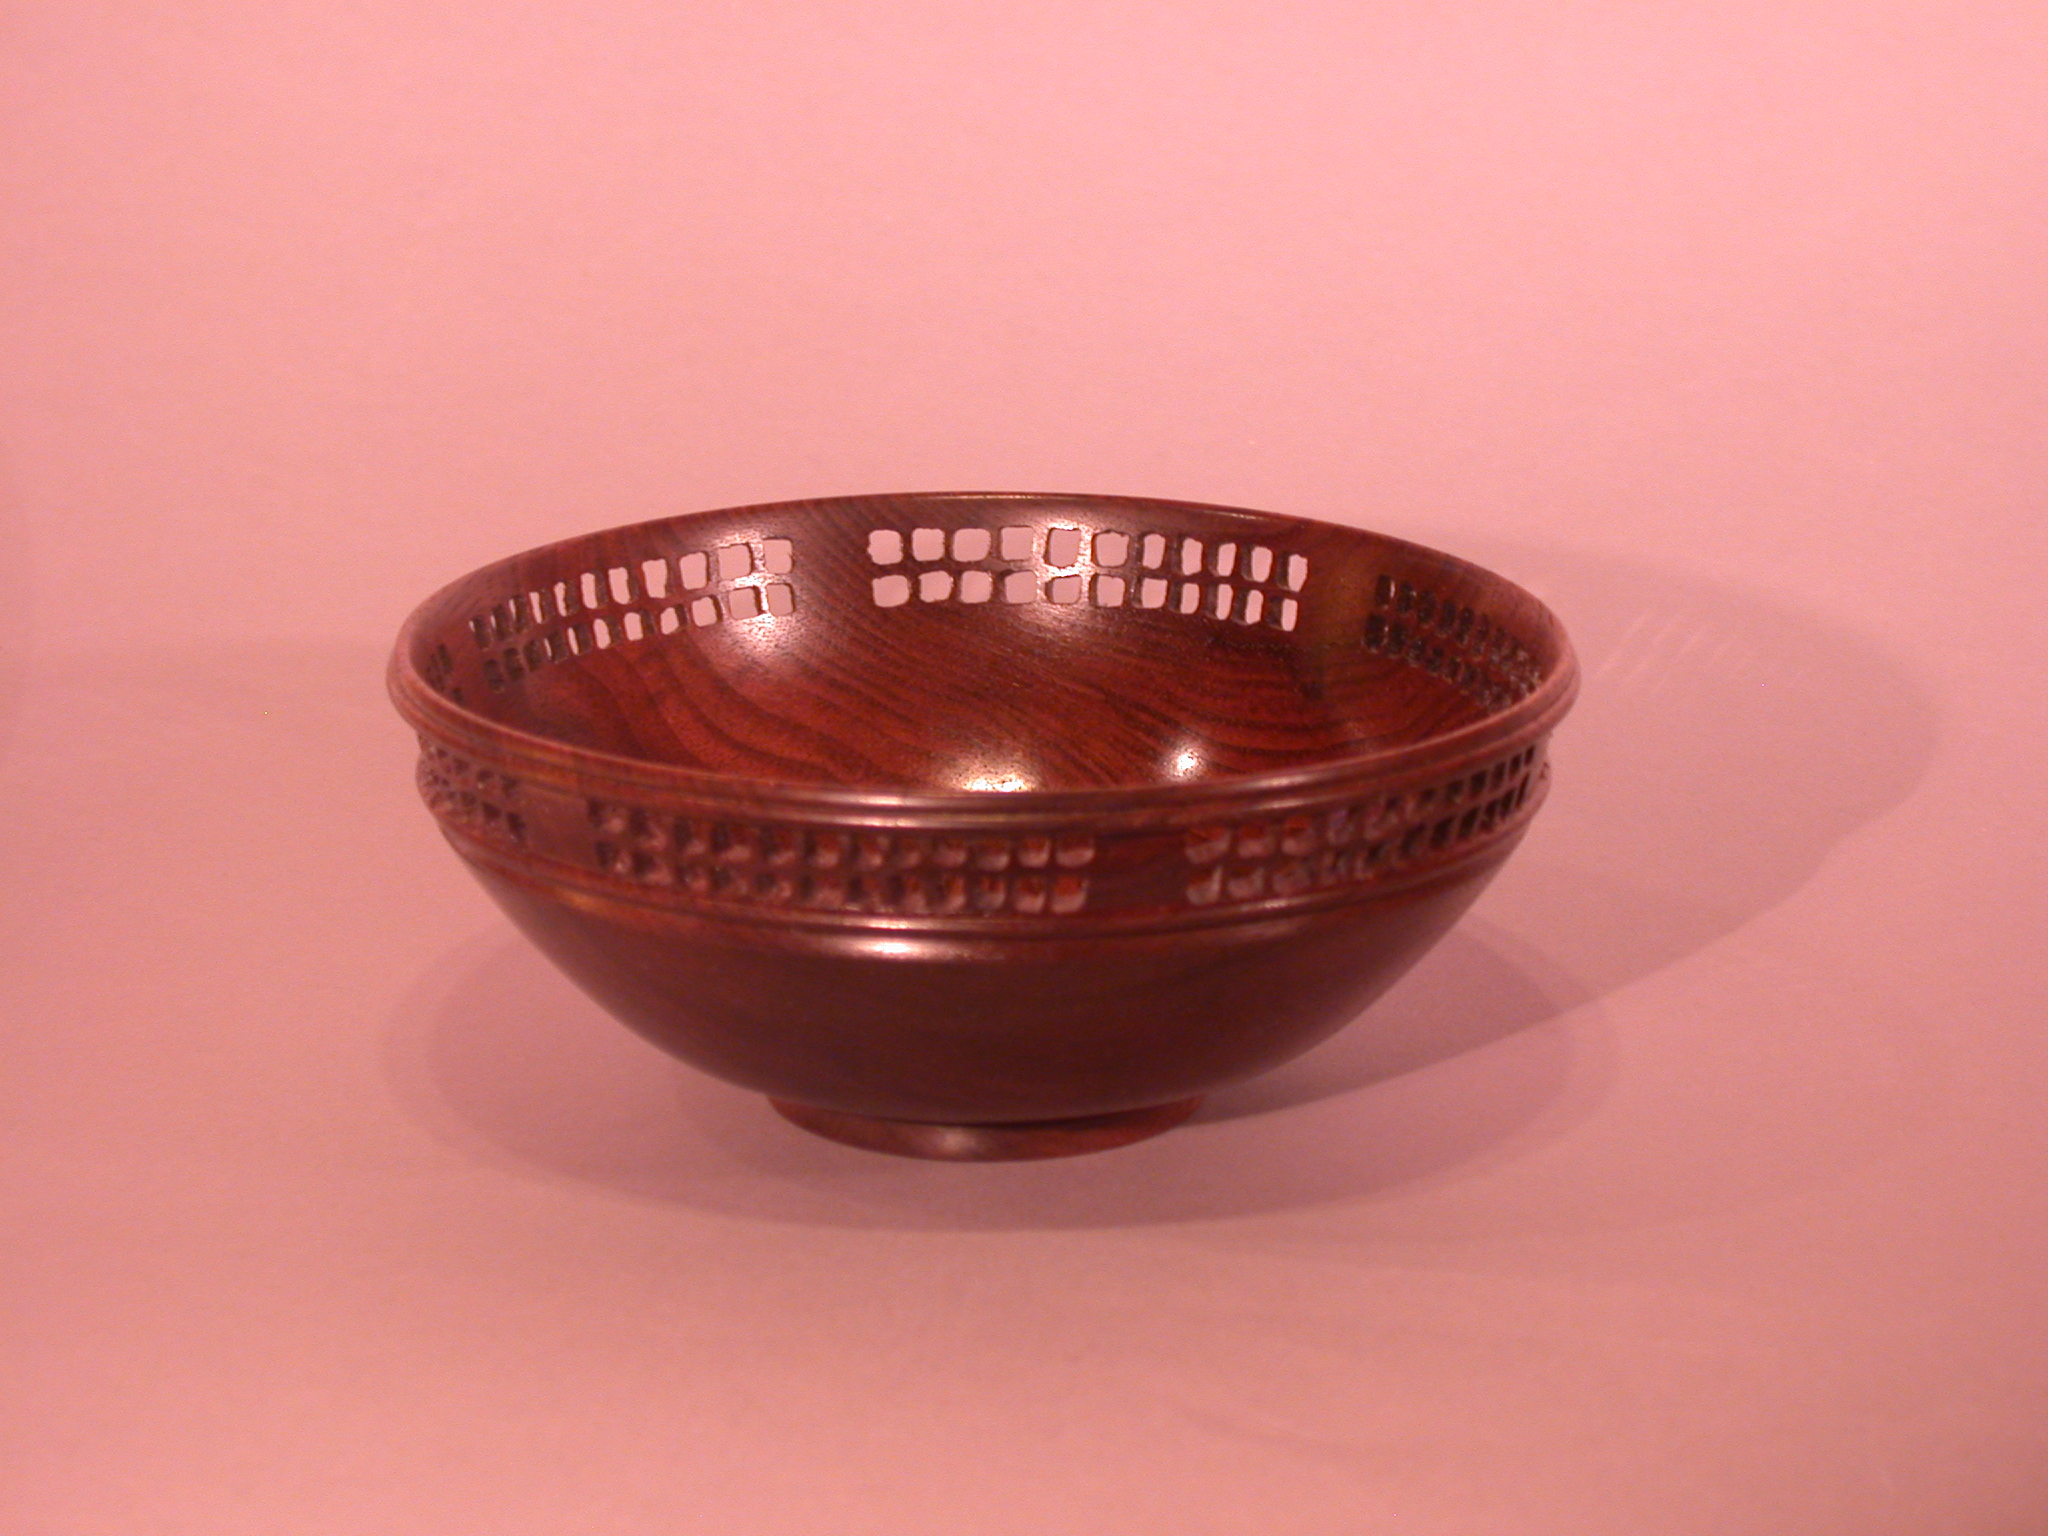 Turned bowls with lattice patterning